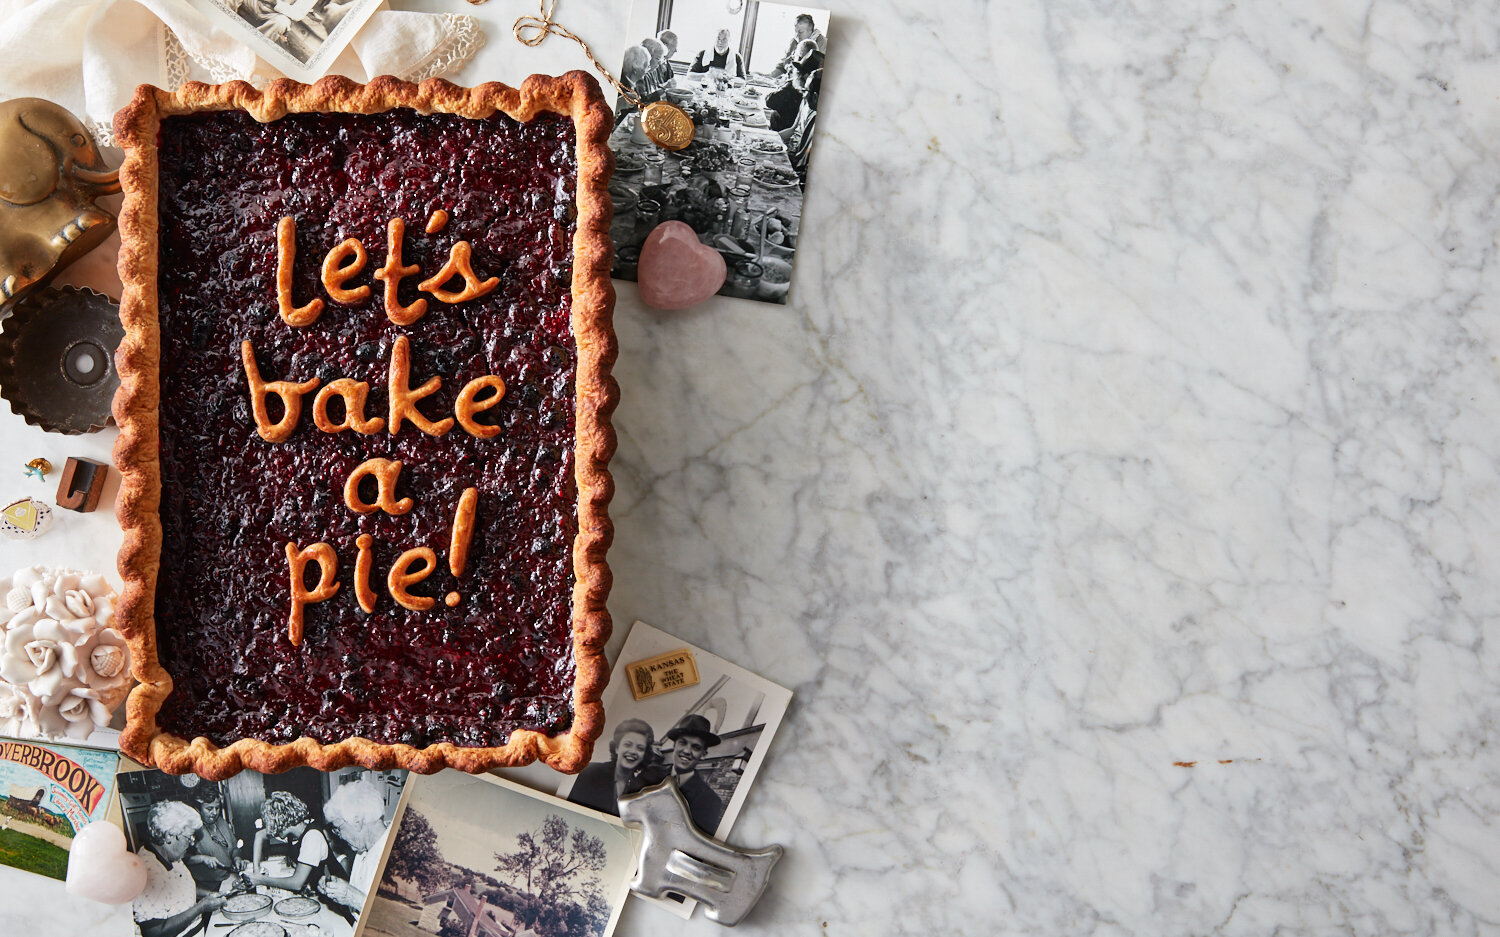 The Book on Pie — Makes a great gift for any baker!